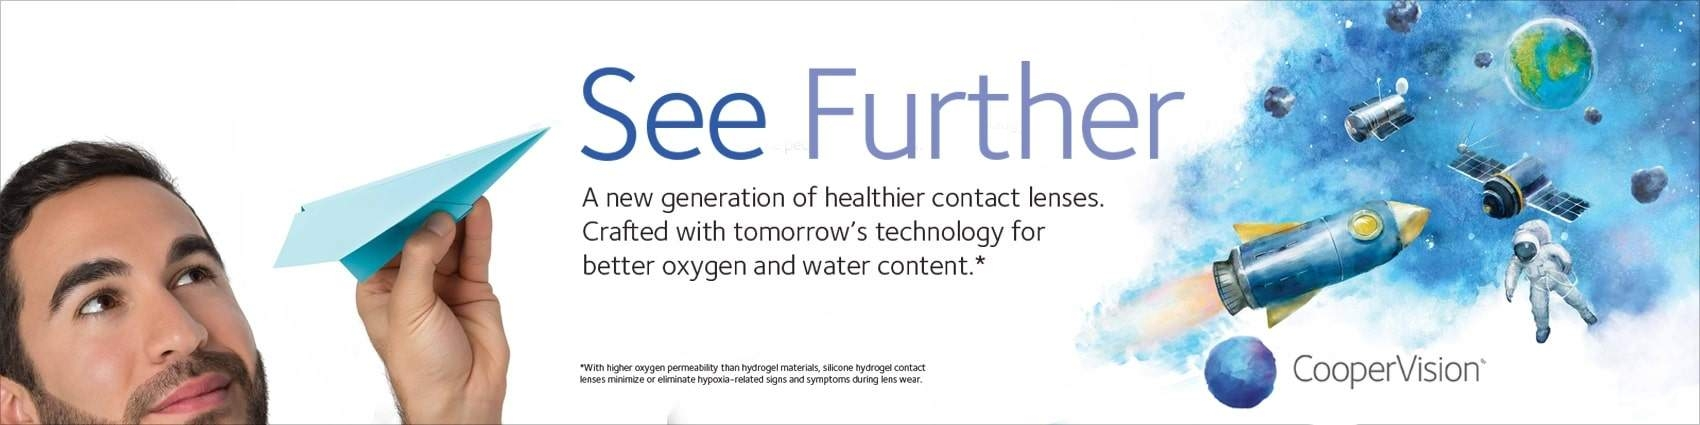 Healthy Contact Lenses